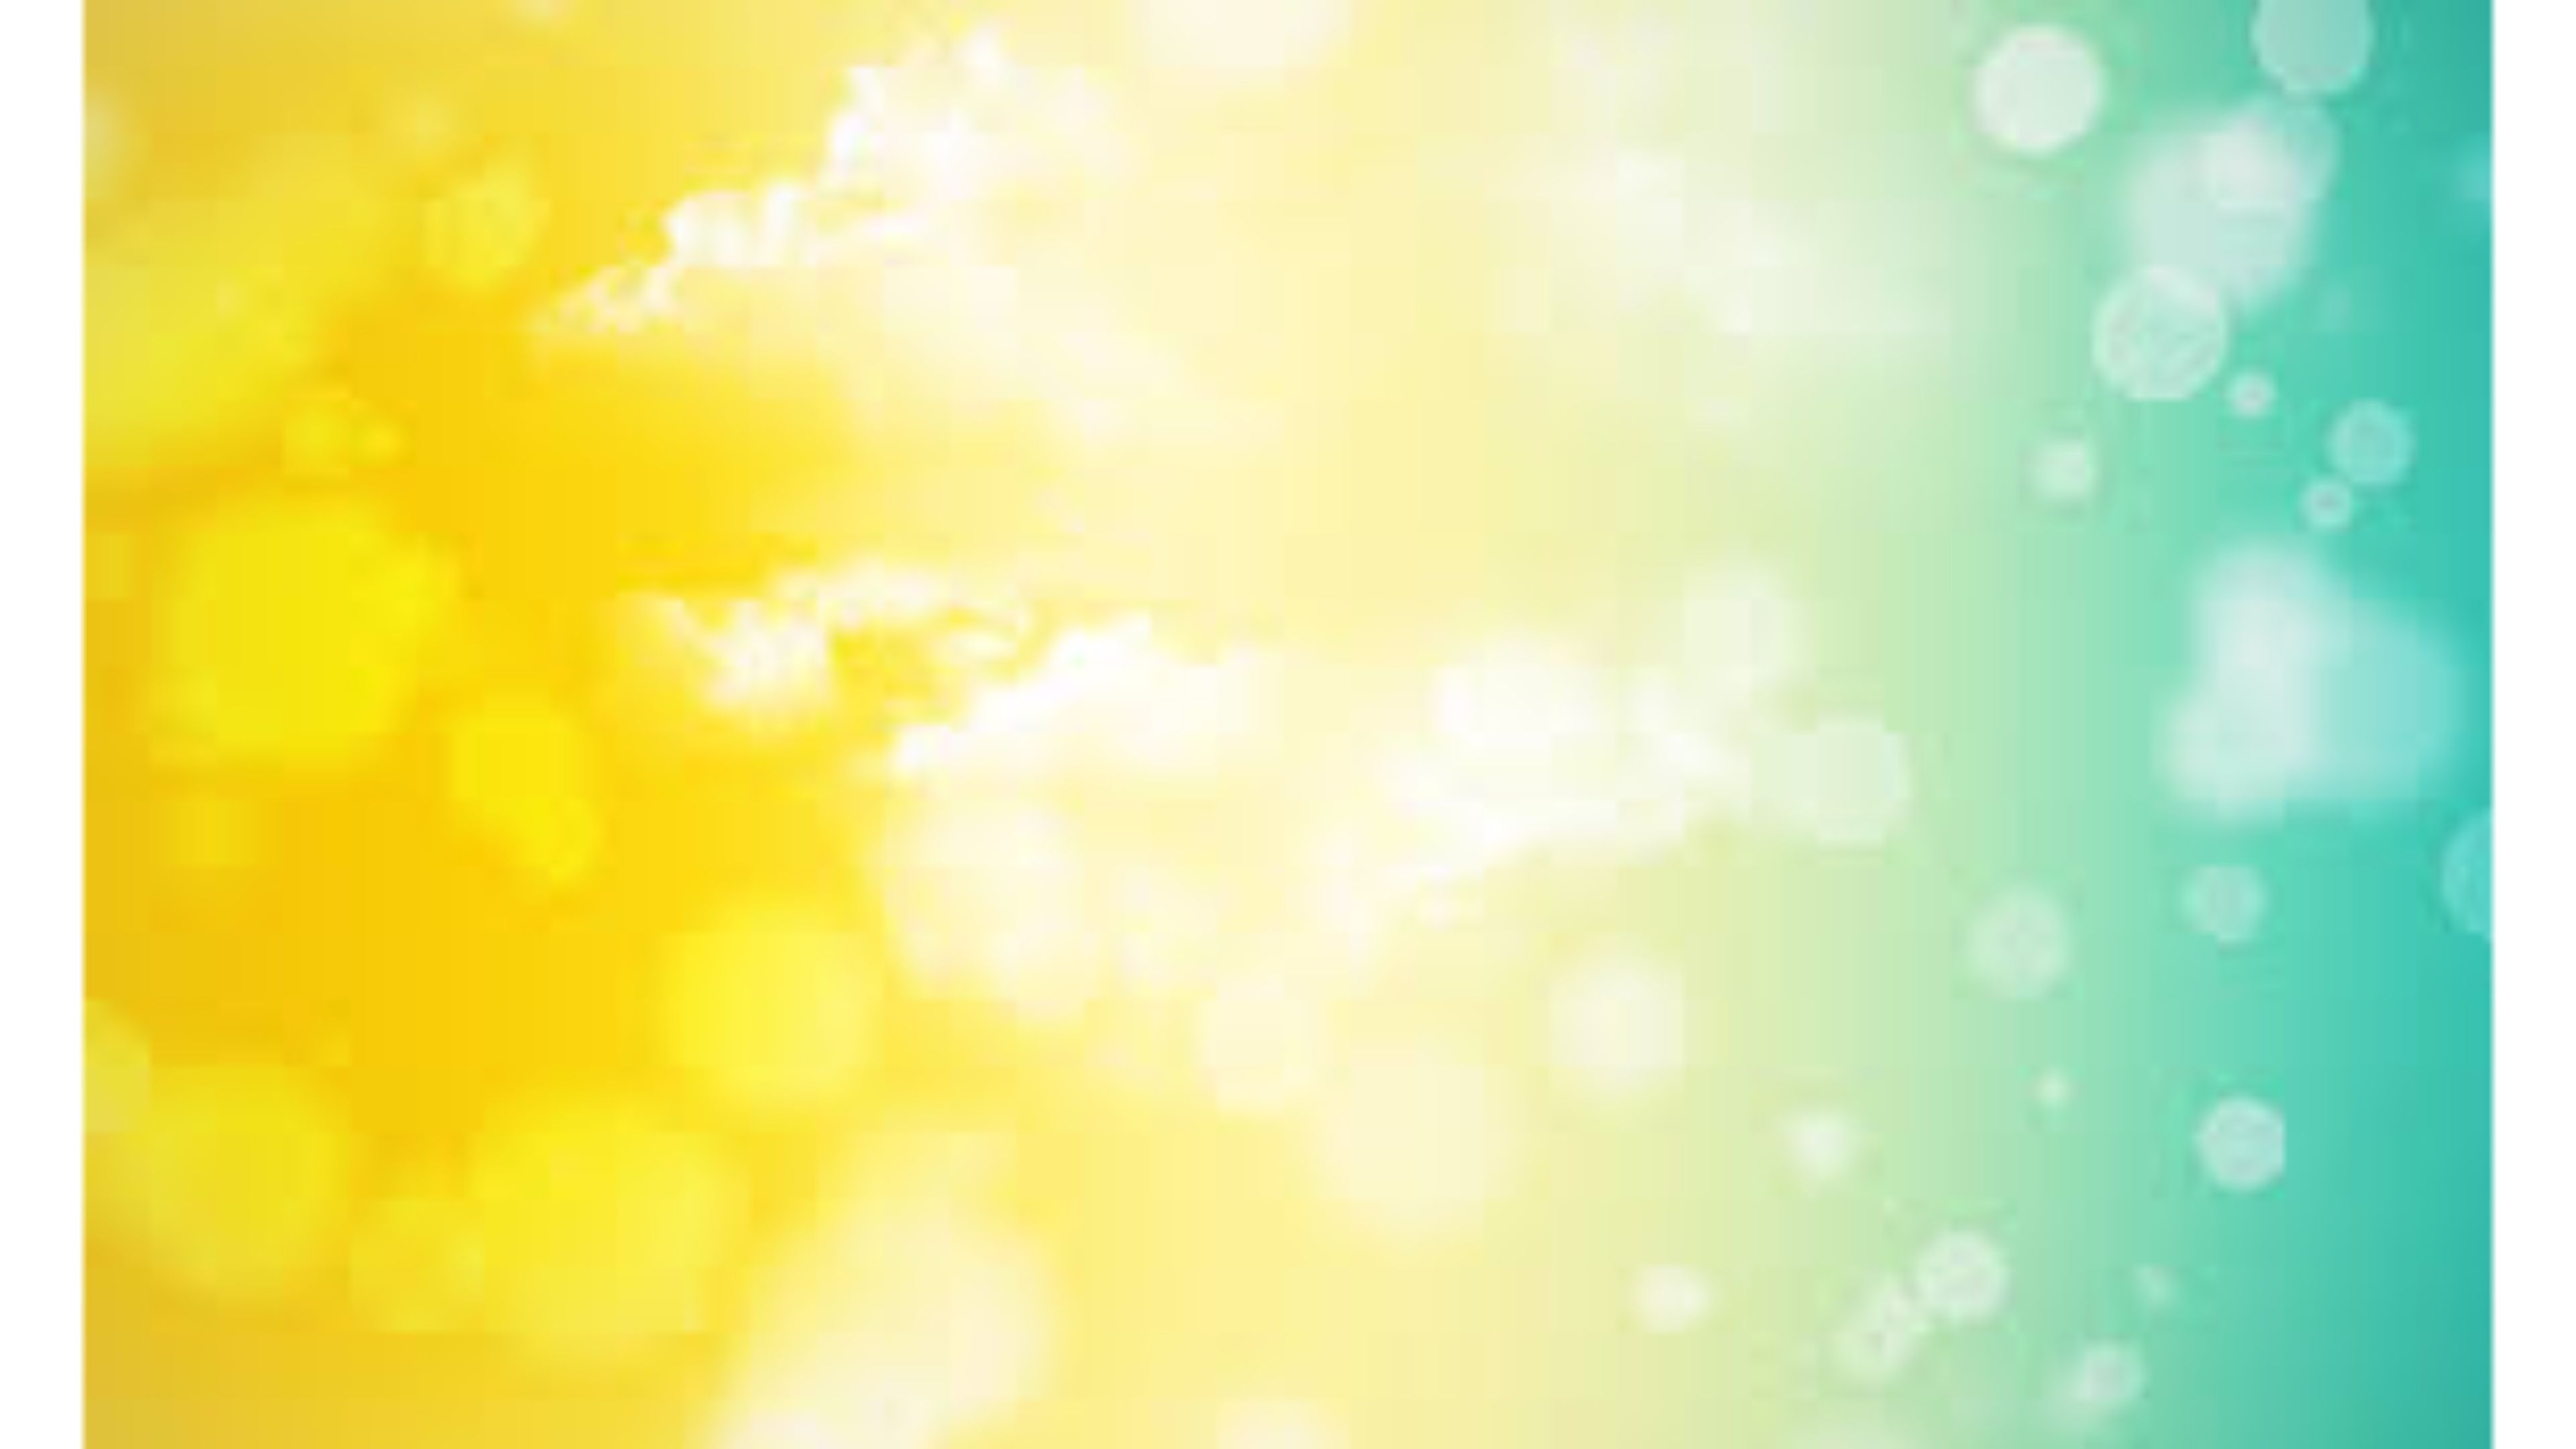 Yellow To Blue Abstract 4k High Definition Wallpaper